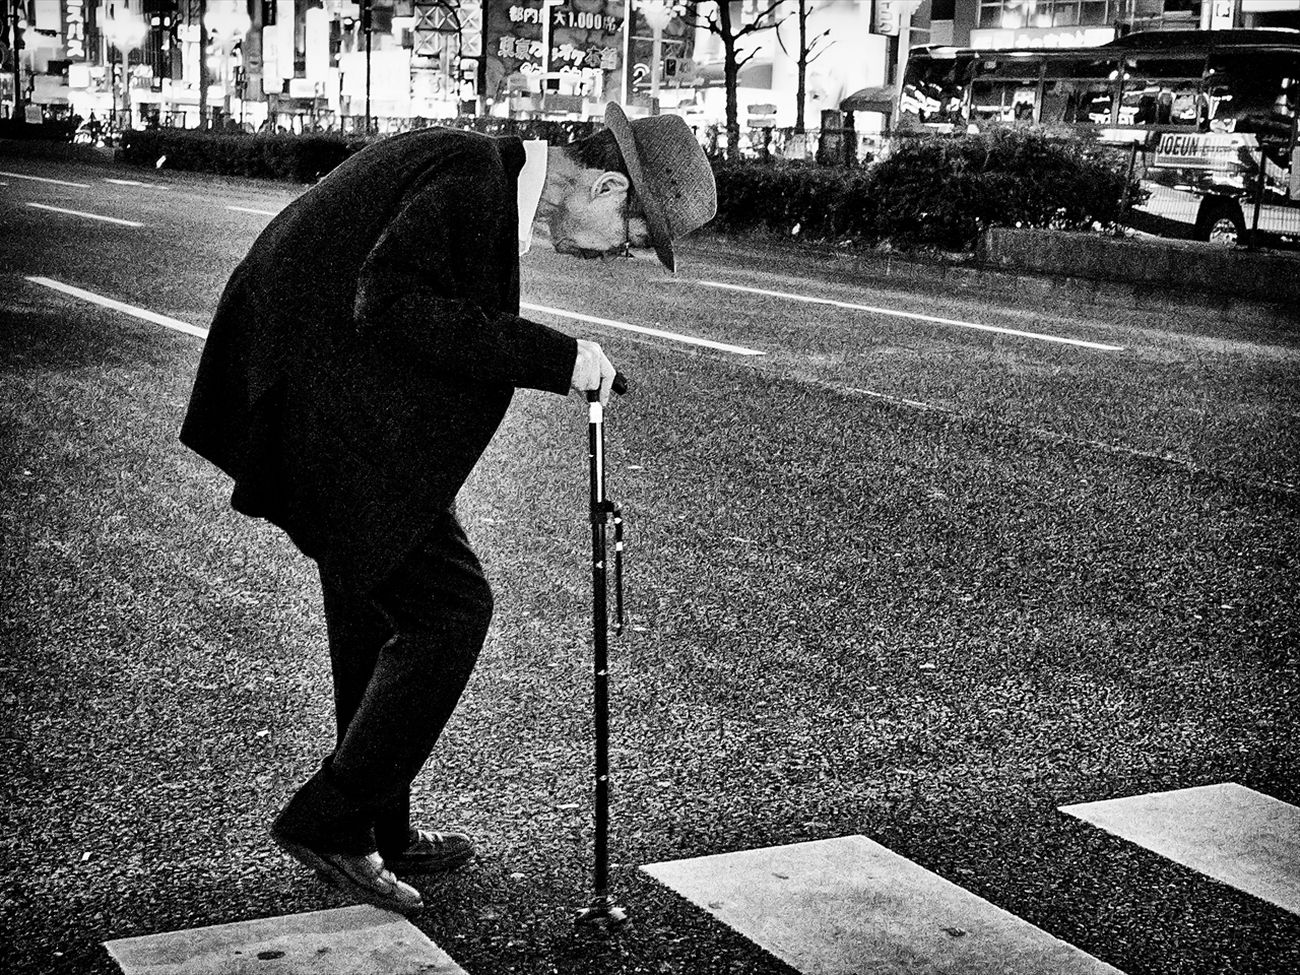 トーキョー・ブルース ~Tokyo Blues~ 新宿 Shinjyuku B&w Street Photography Black And White Creative Light And Shadow Monochrome Photography People Shibuya SHINJYUKU Street Street Photography Streetphoto Streetphoto_bw Streetphotographer Streetphotographers Streetphotography Streetphotography_bw Tokyo Tokyo Street Photography Tokyo,Japan